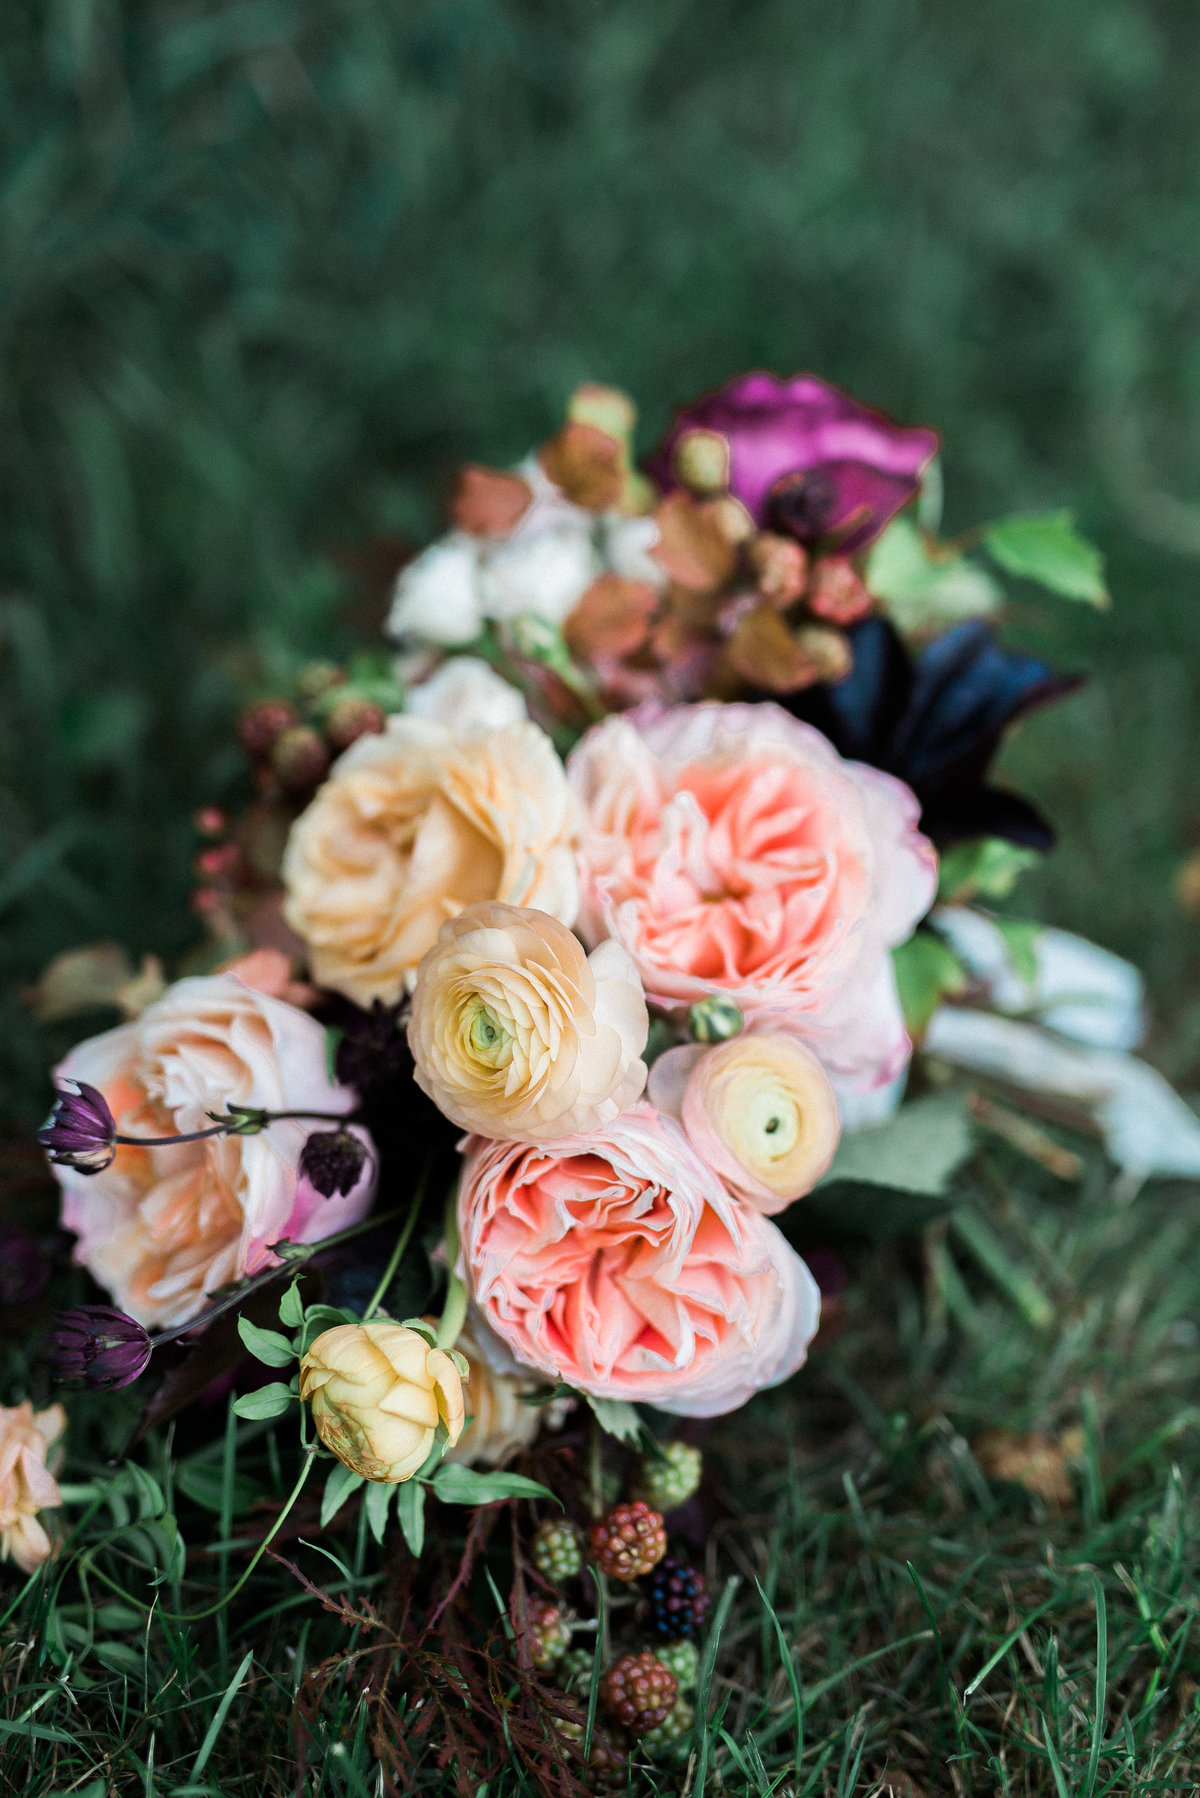 Toronto Wedding Florist - Lush Florals and Destiny Dawn Photography